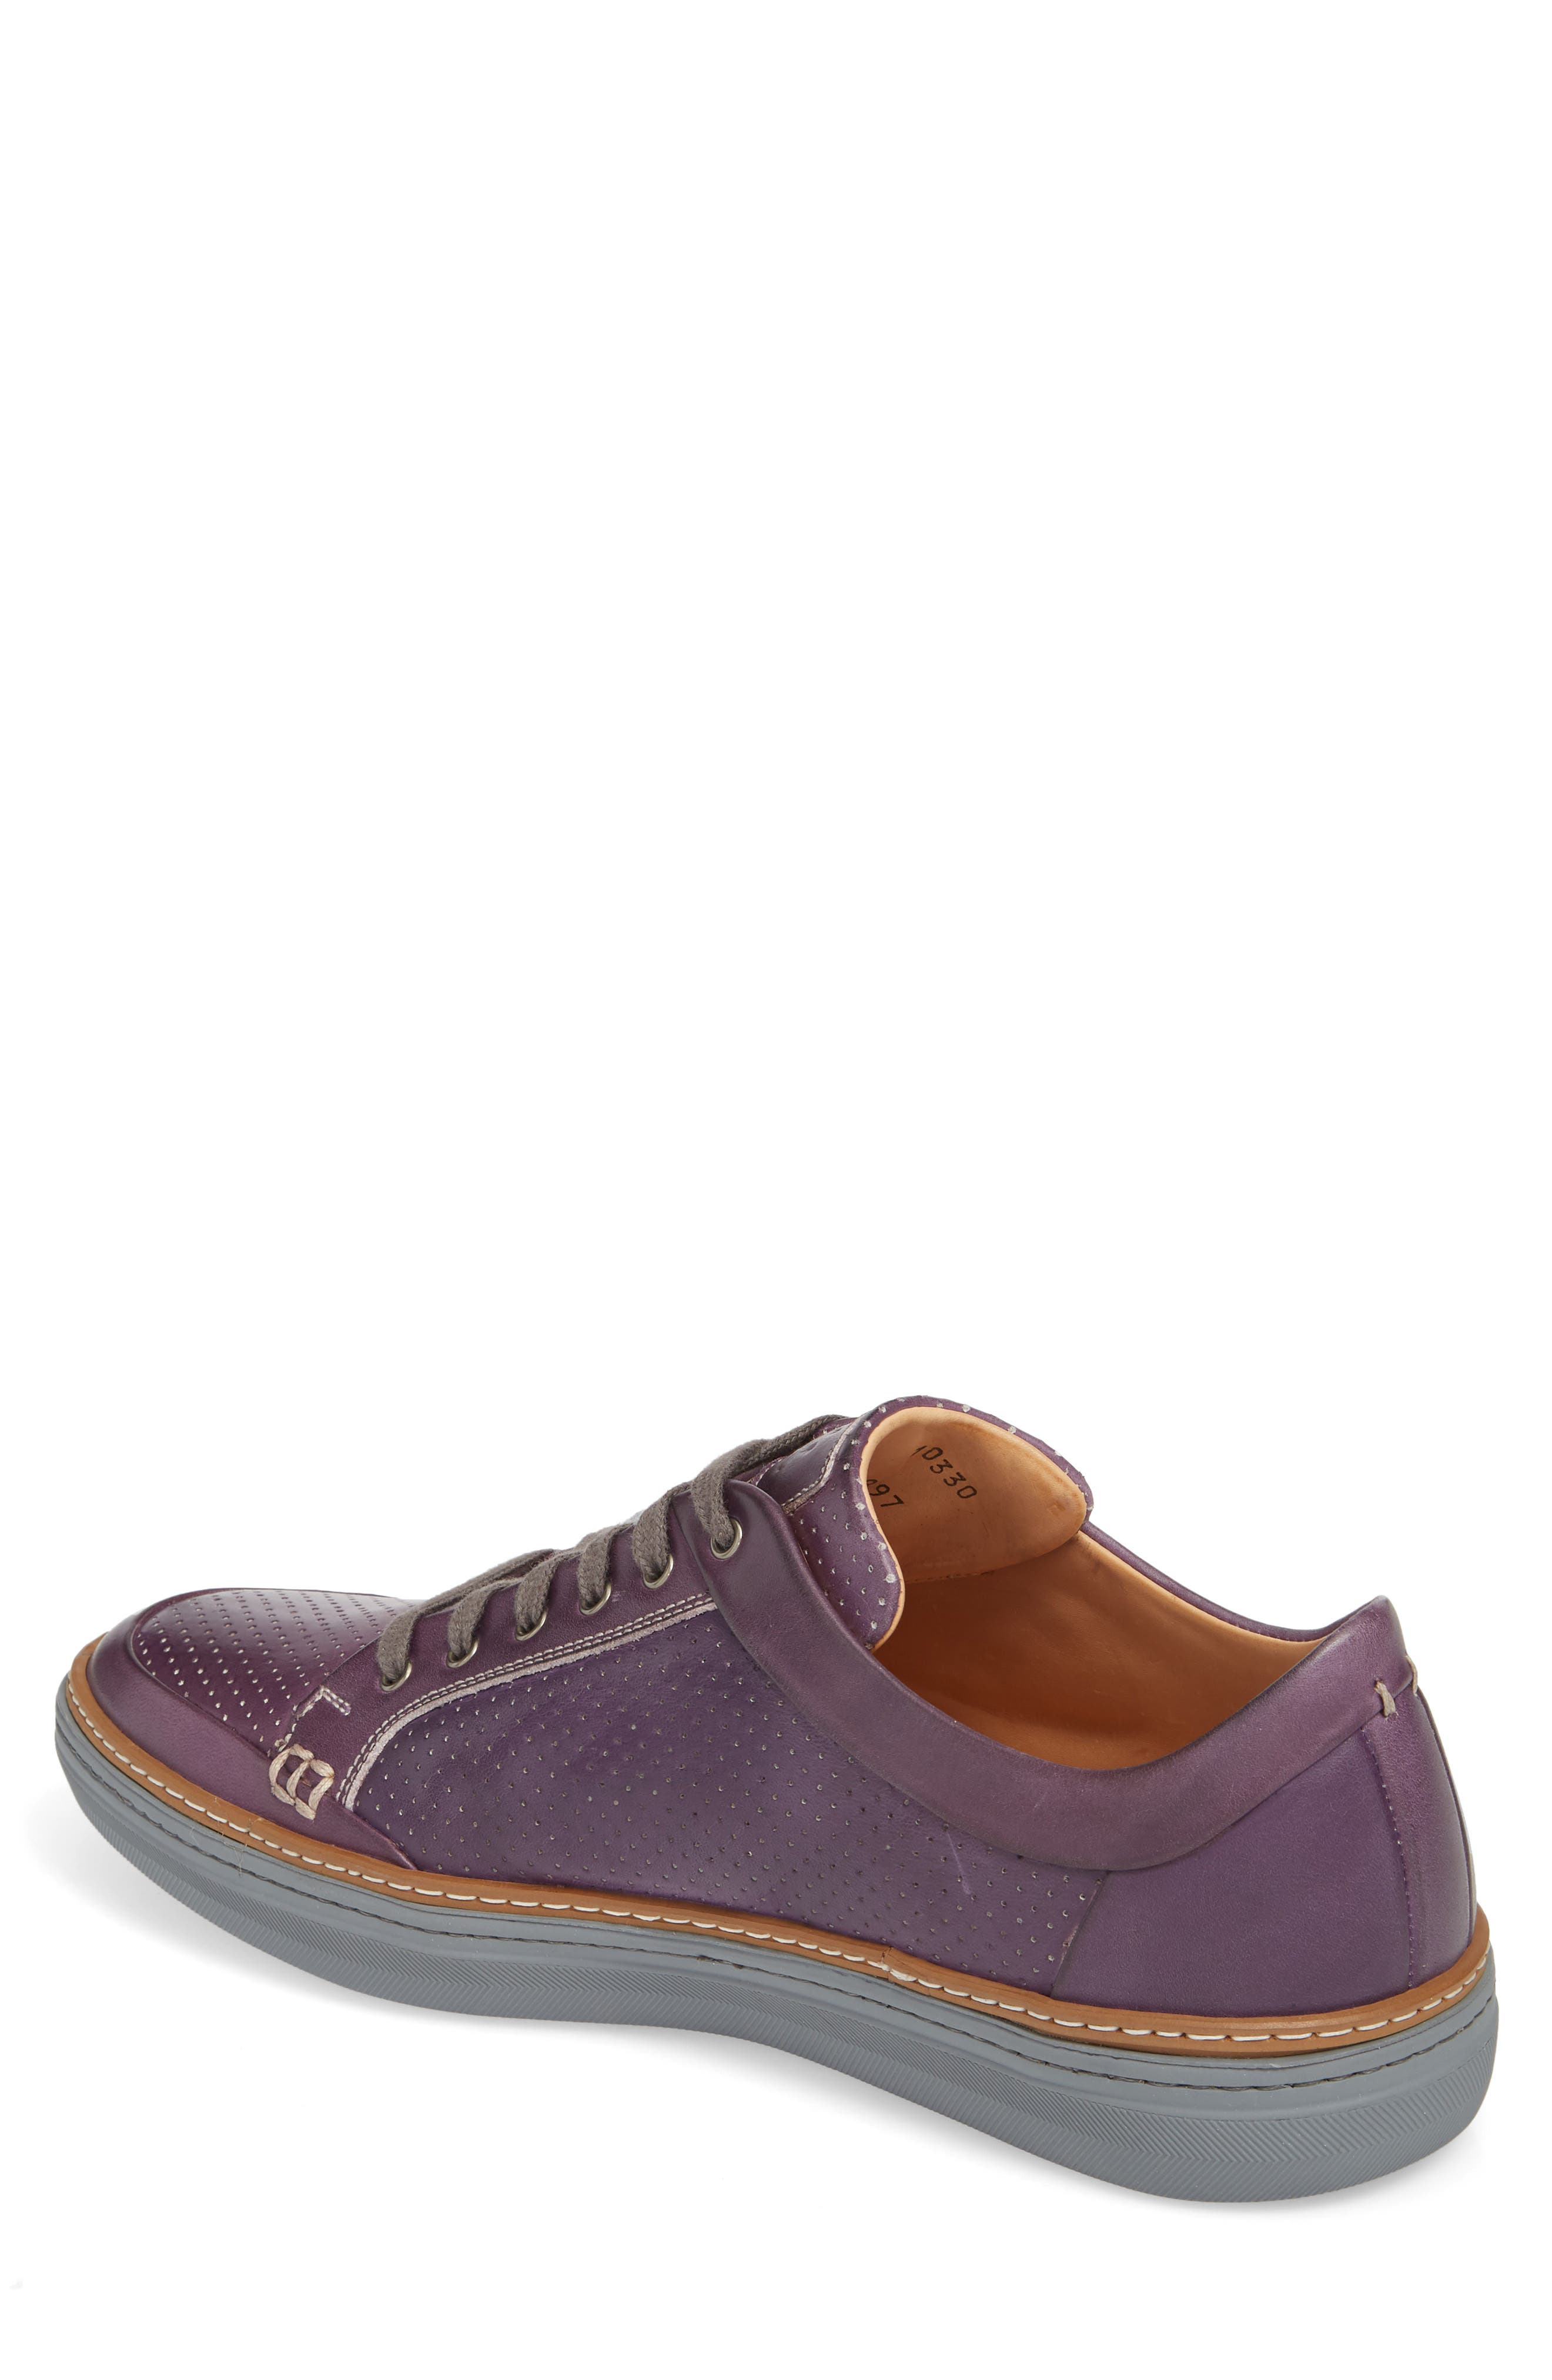 Ceres Perforated Low Top Sneaker,                             Alternate thumbnail 2, color,                             PURPLE LEATHER